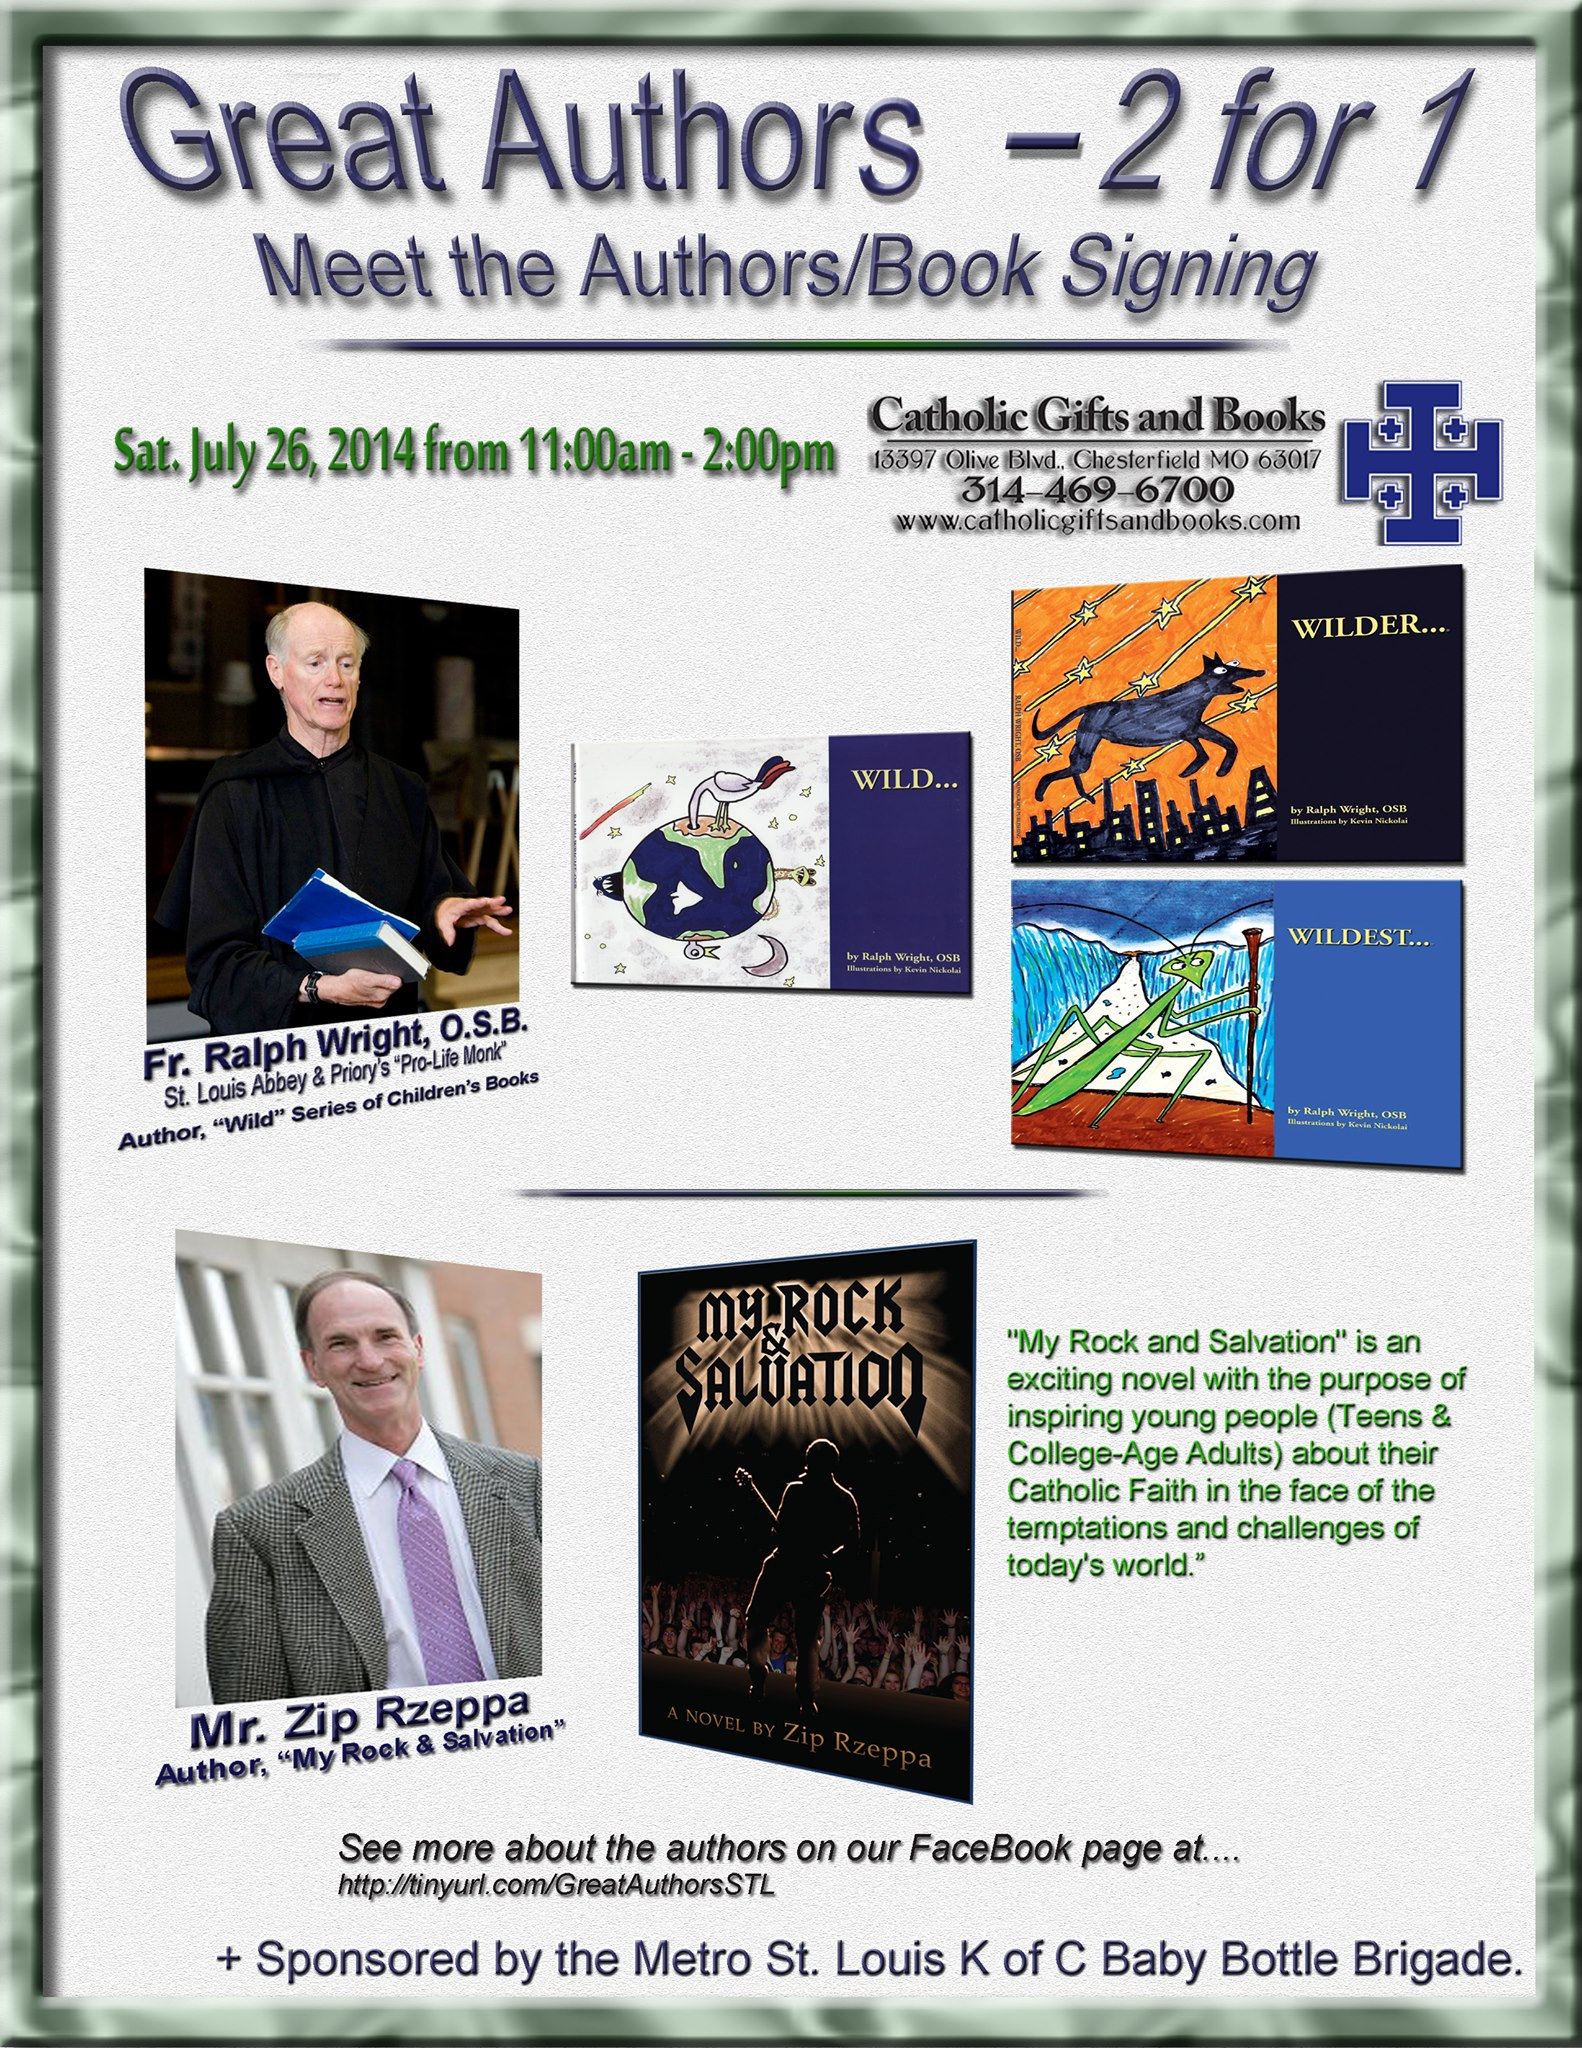 Fr. Ralph Wright, OSB & Zip Rzeppa Book Signing Flyer (2014)